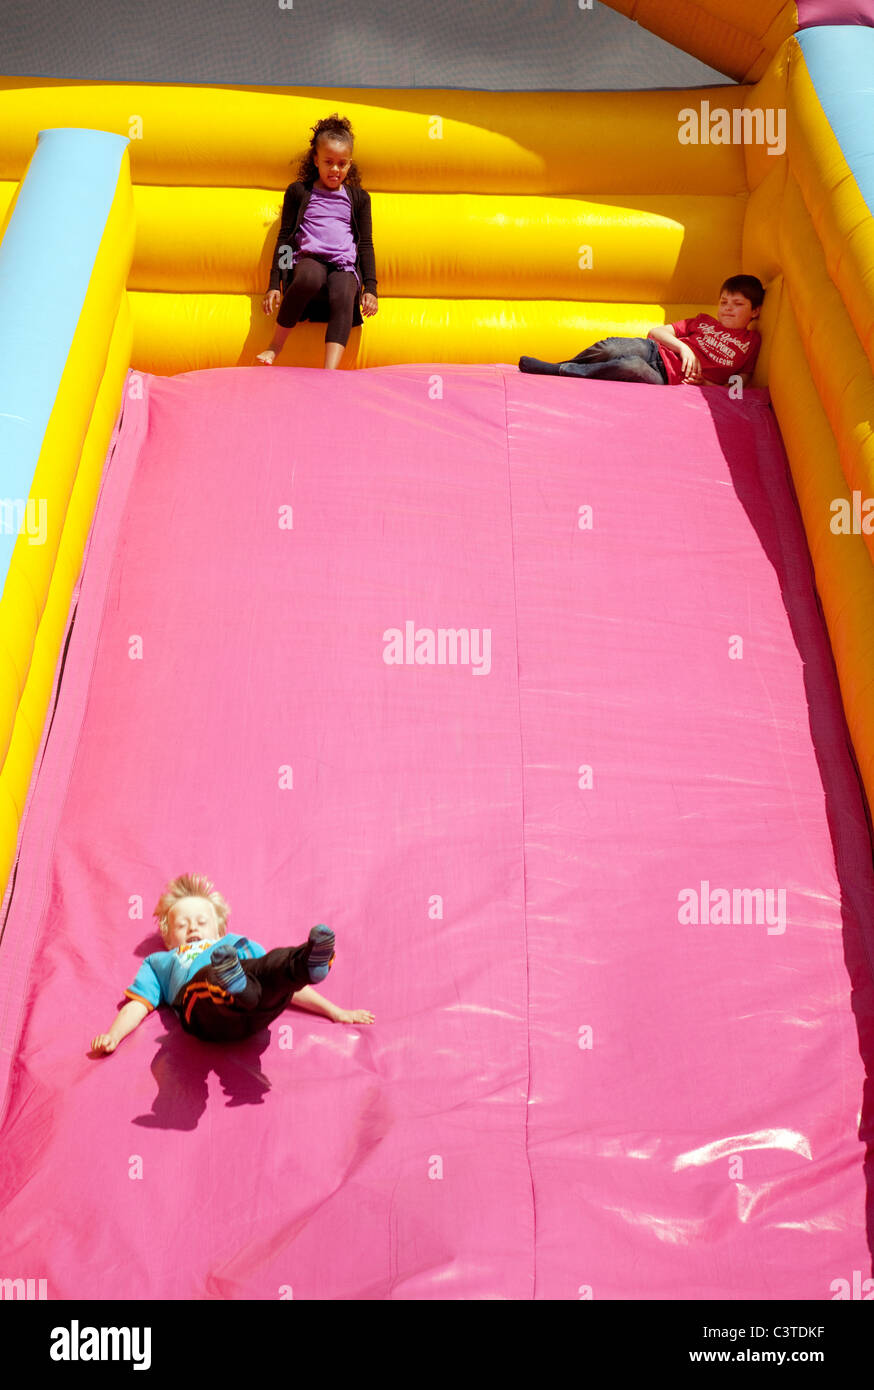 Three young children on an inflatable slide, Reach fair, Cambridgeshire UK - Stock Image